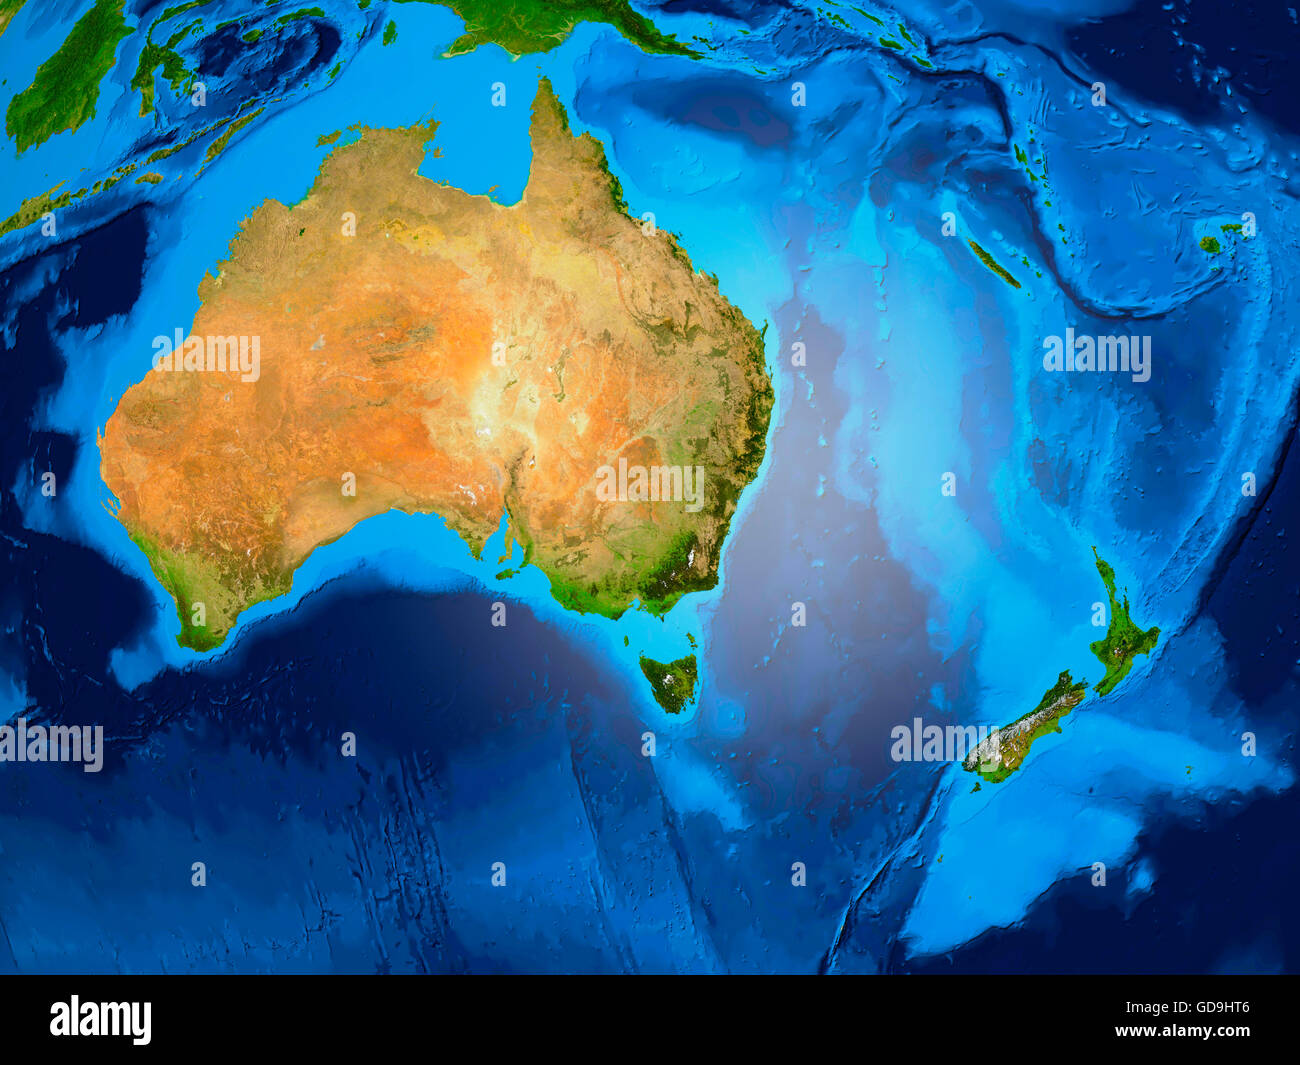 Earth globe showing oceania australia new zealand 3d illustration earth globe showing oceania australia new zealand 3d illustration gumiabroncs Images